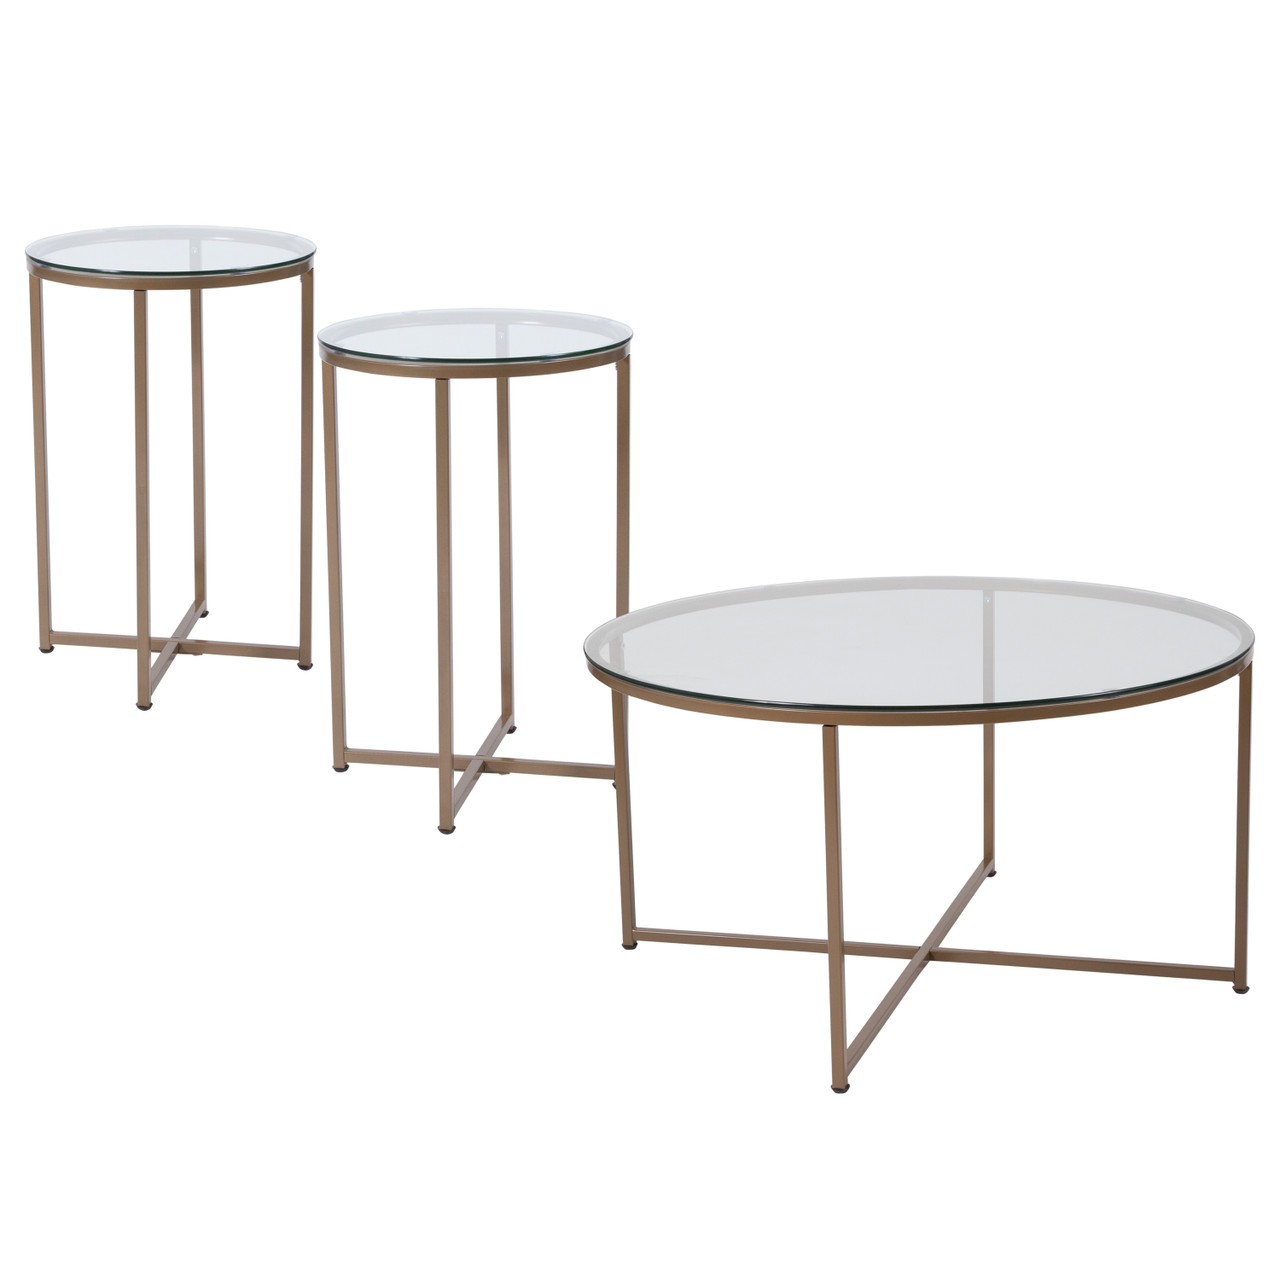 - The 3 Piece Round Coffee And End Table Set With Glass Tops And